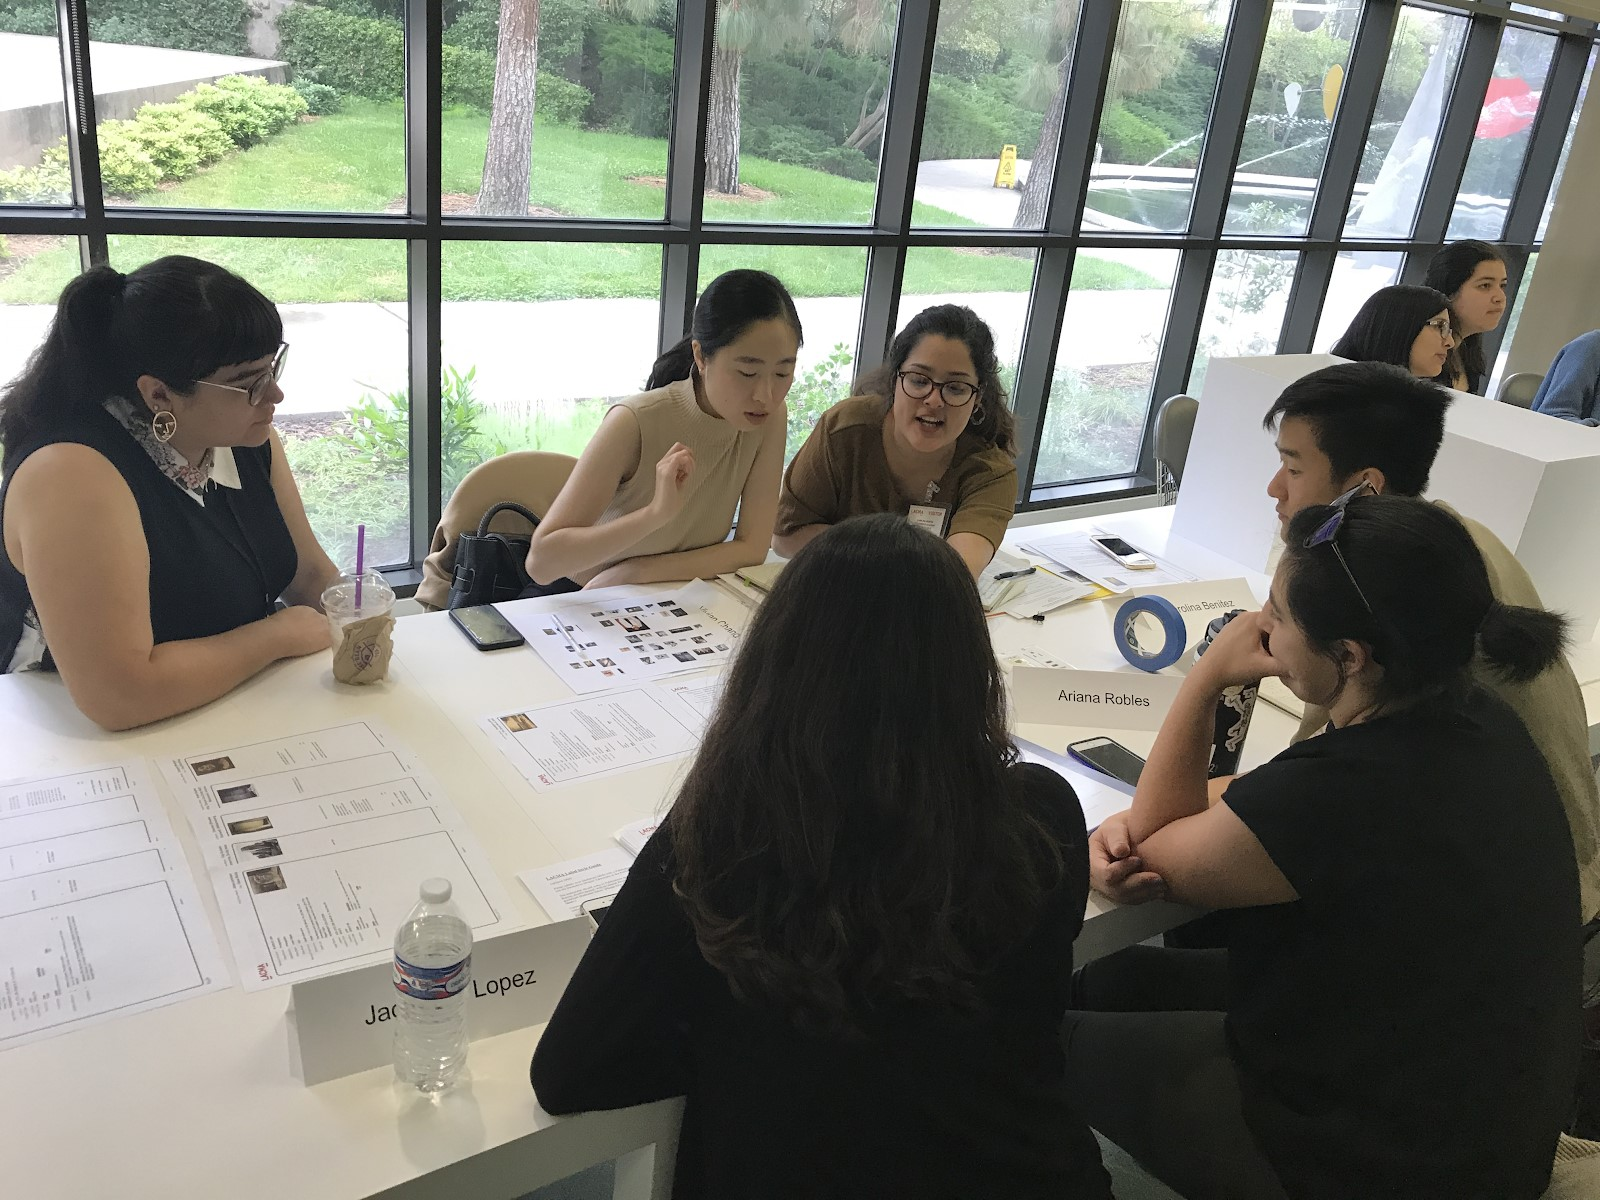 Danielle Pesqueira (advisor) with 2019 Mellon Summer Academy students: Vivian Change, Carolina Benitez, Brent Fong, Ariana Robles and Jackeline Lopez, photo courtesy Hilary Walter